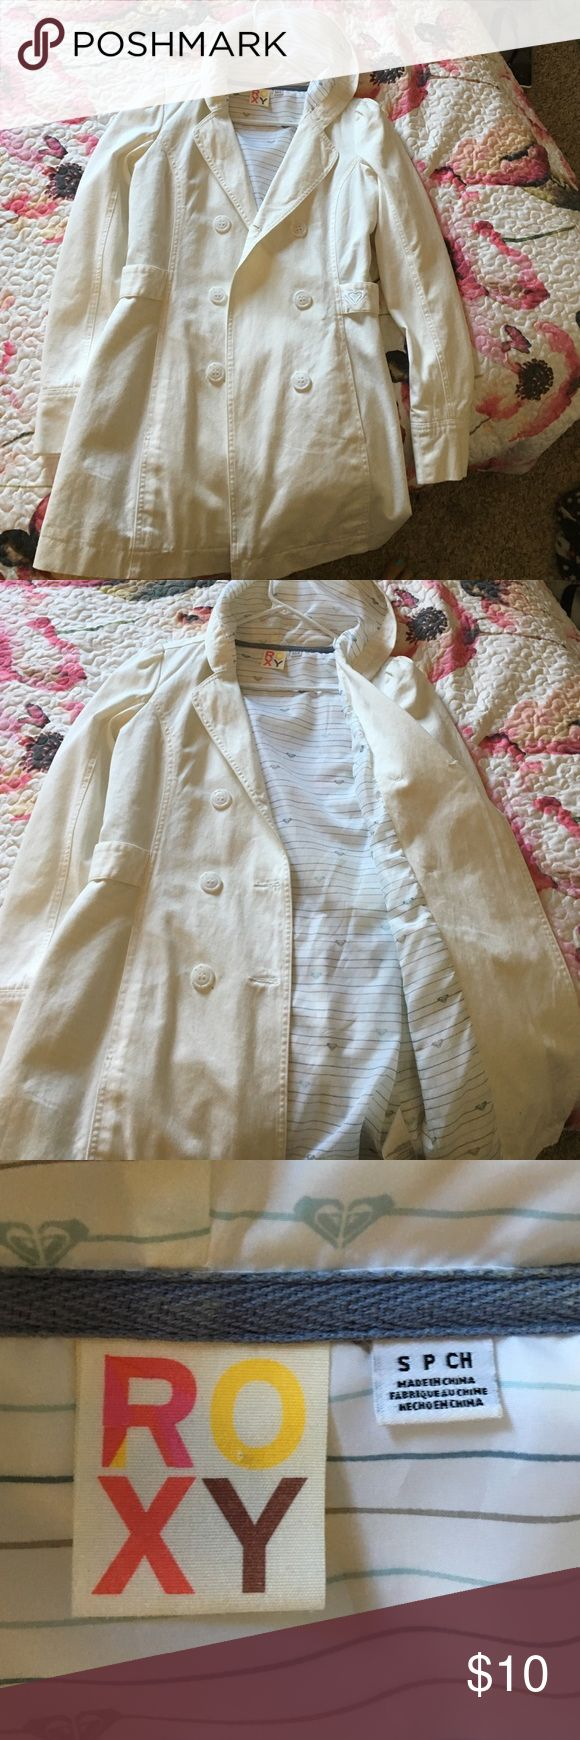 Roxy pea coat Solid white pea coat. Bought and never worn. Great for spring and fall time! Roxy Jackets & Coats Pea Coats